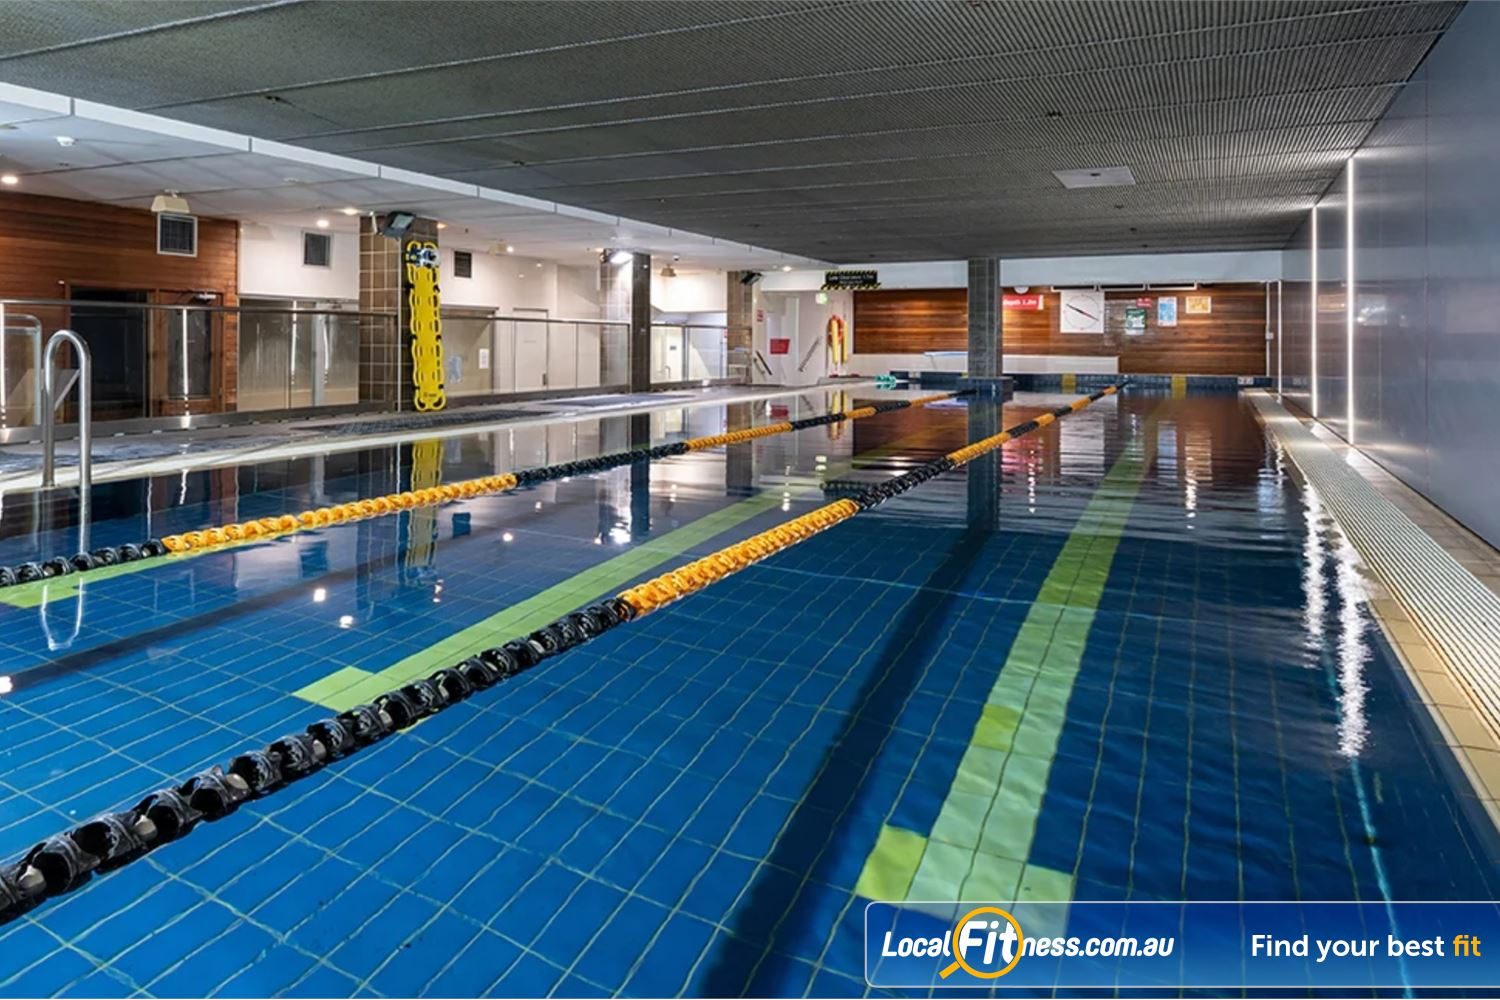 Fitness First Platinum George St. Near World Square Beautiful indoor Sydney swimming pool at Fitness First Platinum George St.